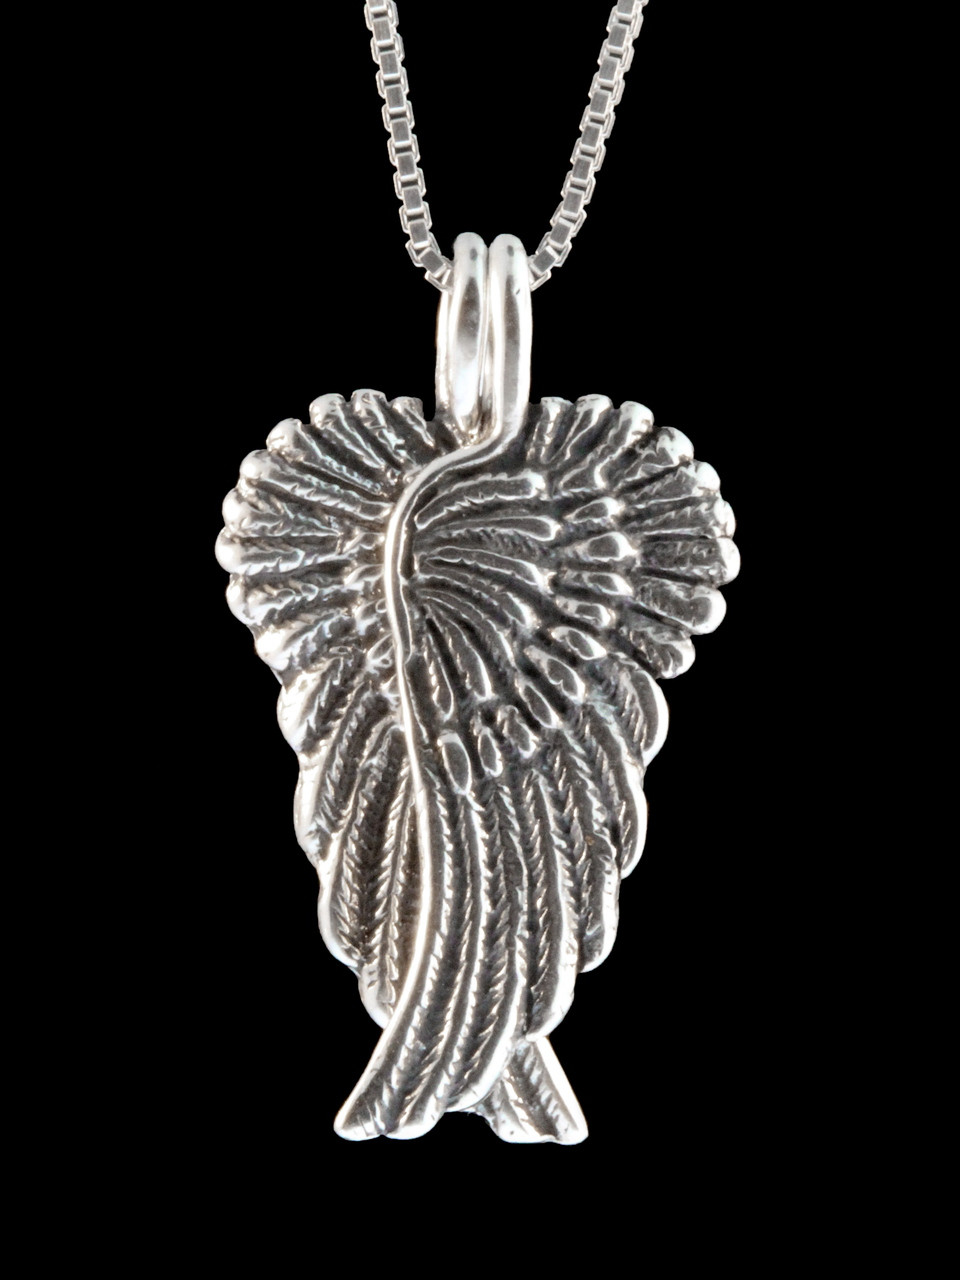 elements made angel sharpen wid swarovski crystal op with pendant prd product silver hei artistique wing crystals over gold jsp necklace